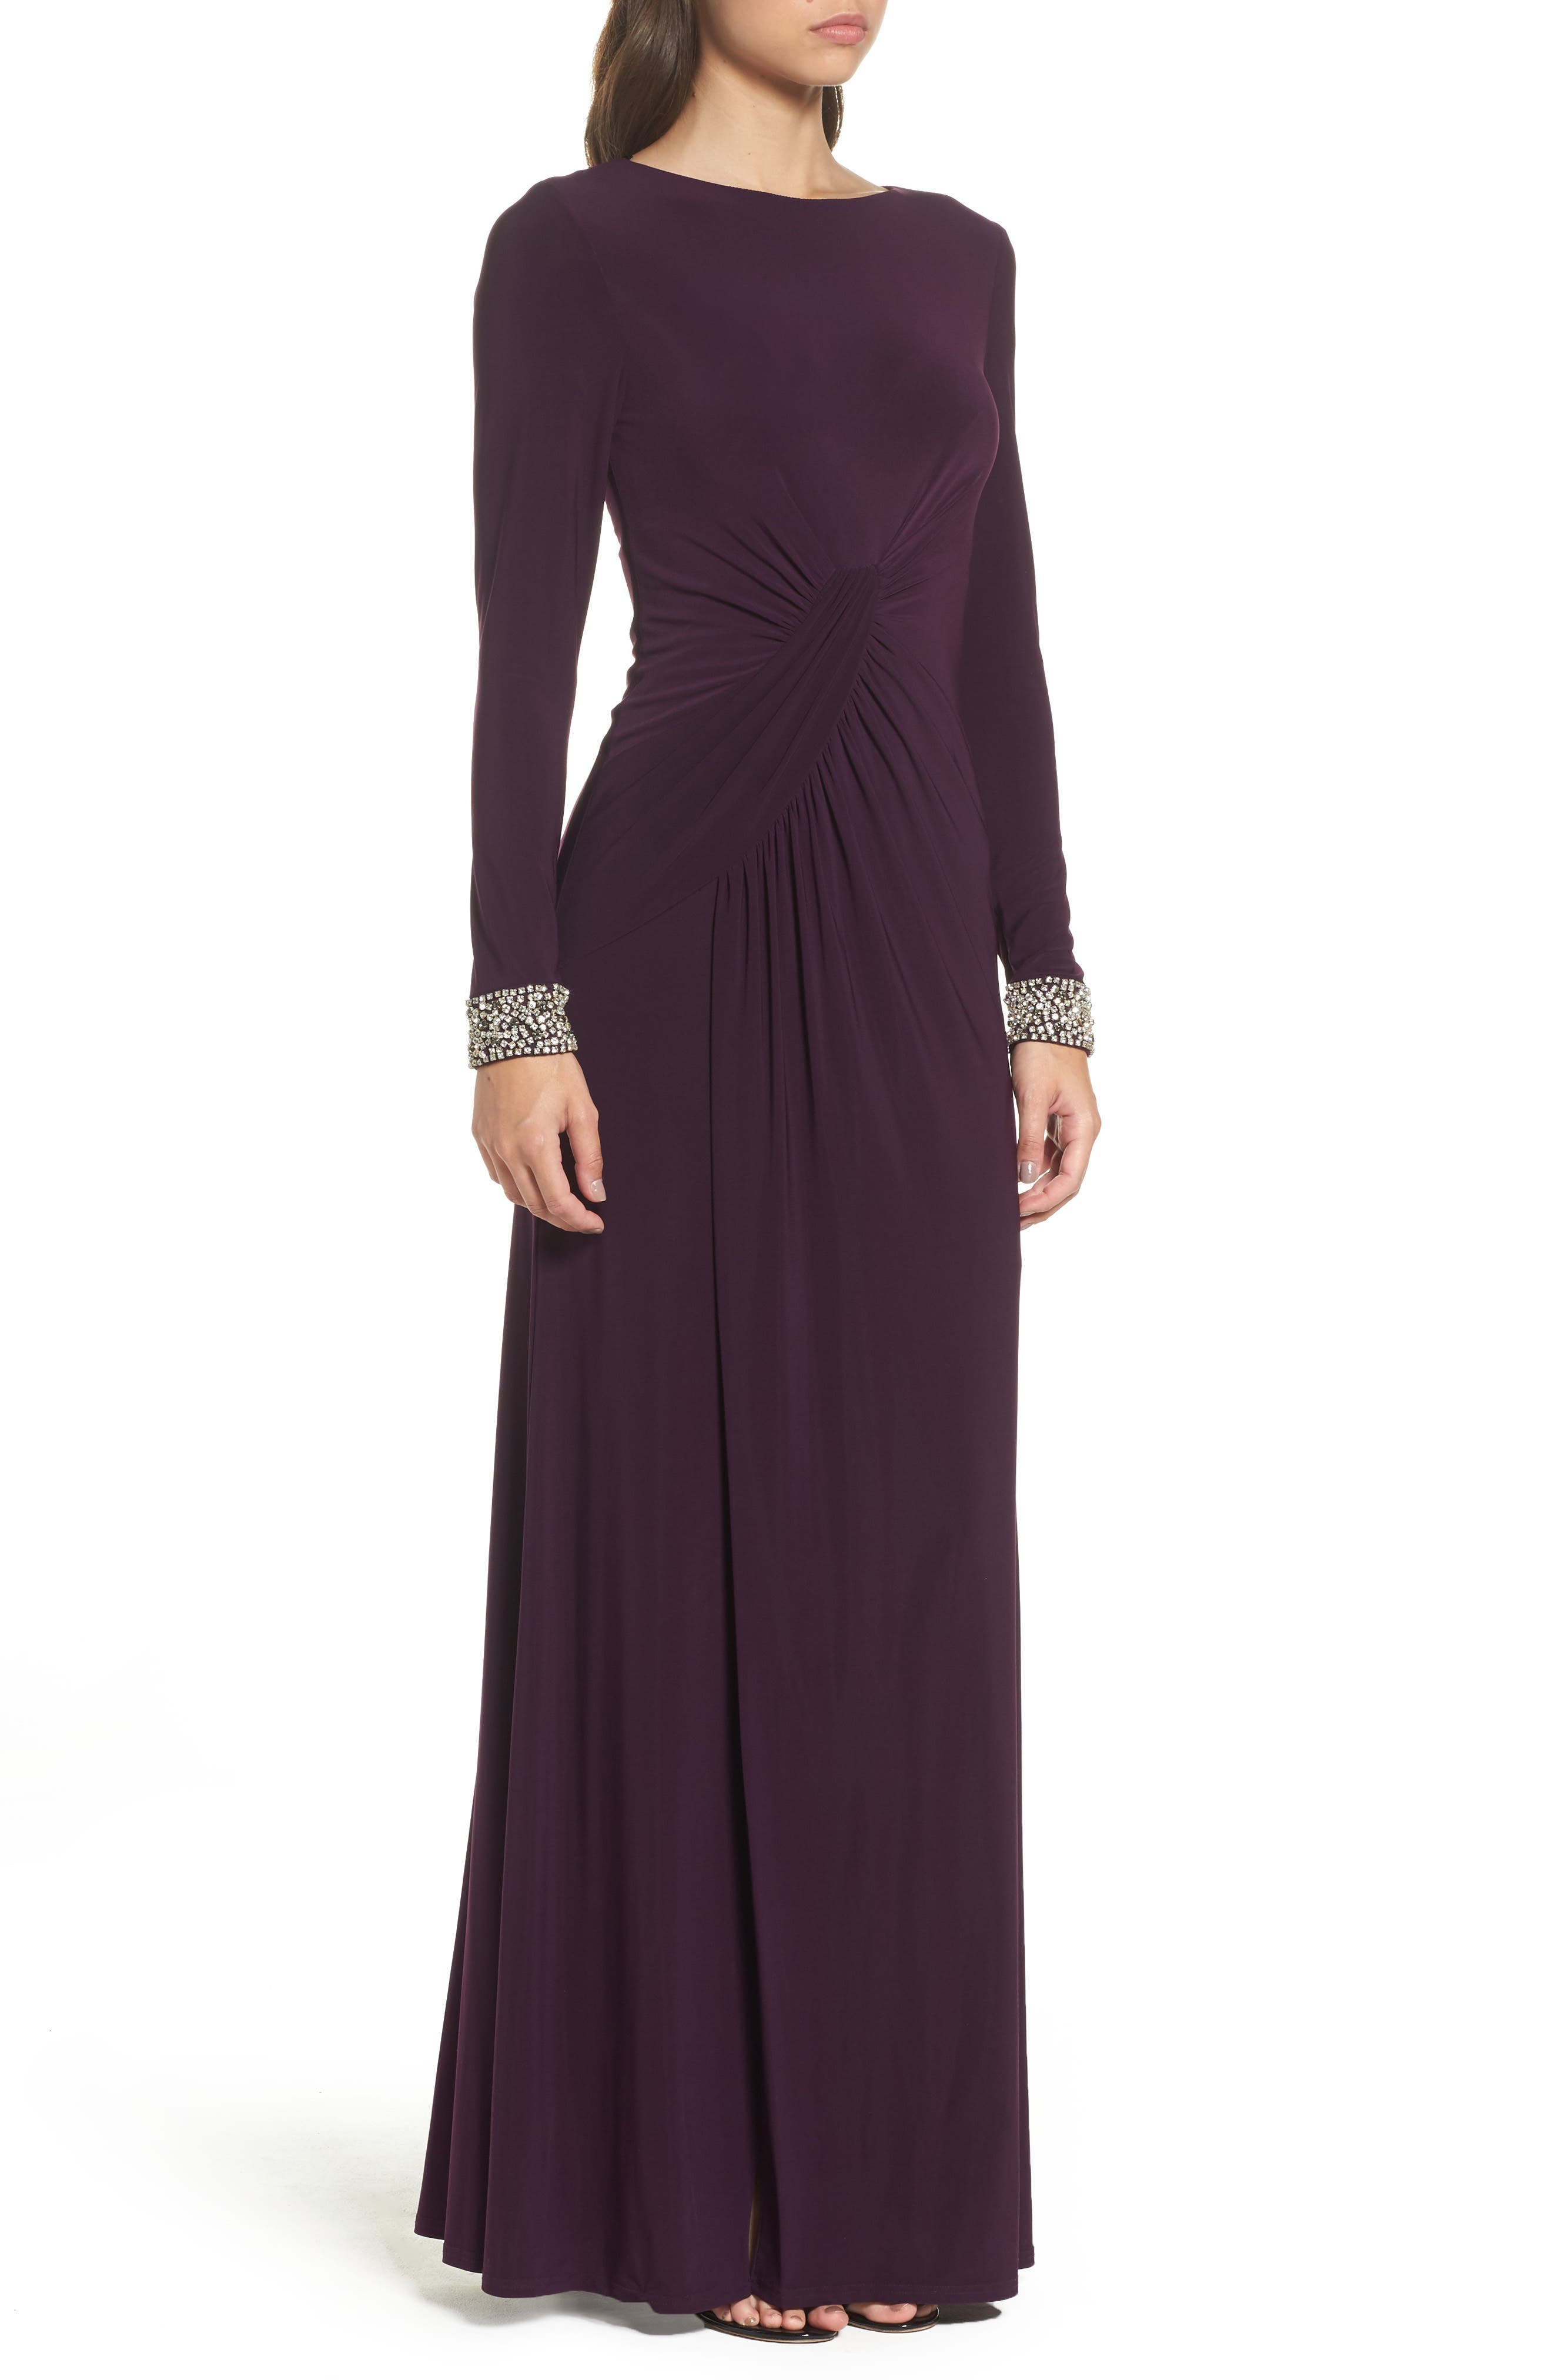 VINCE CAMUTO, Beaded Cuff Ruched Jersey Gown, Alternate thumbnail 3, color, 505